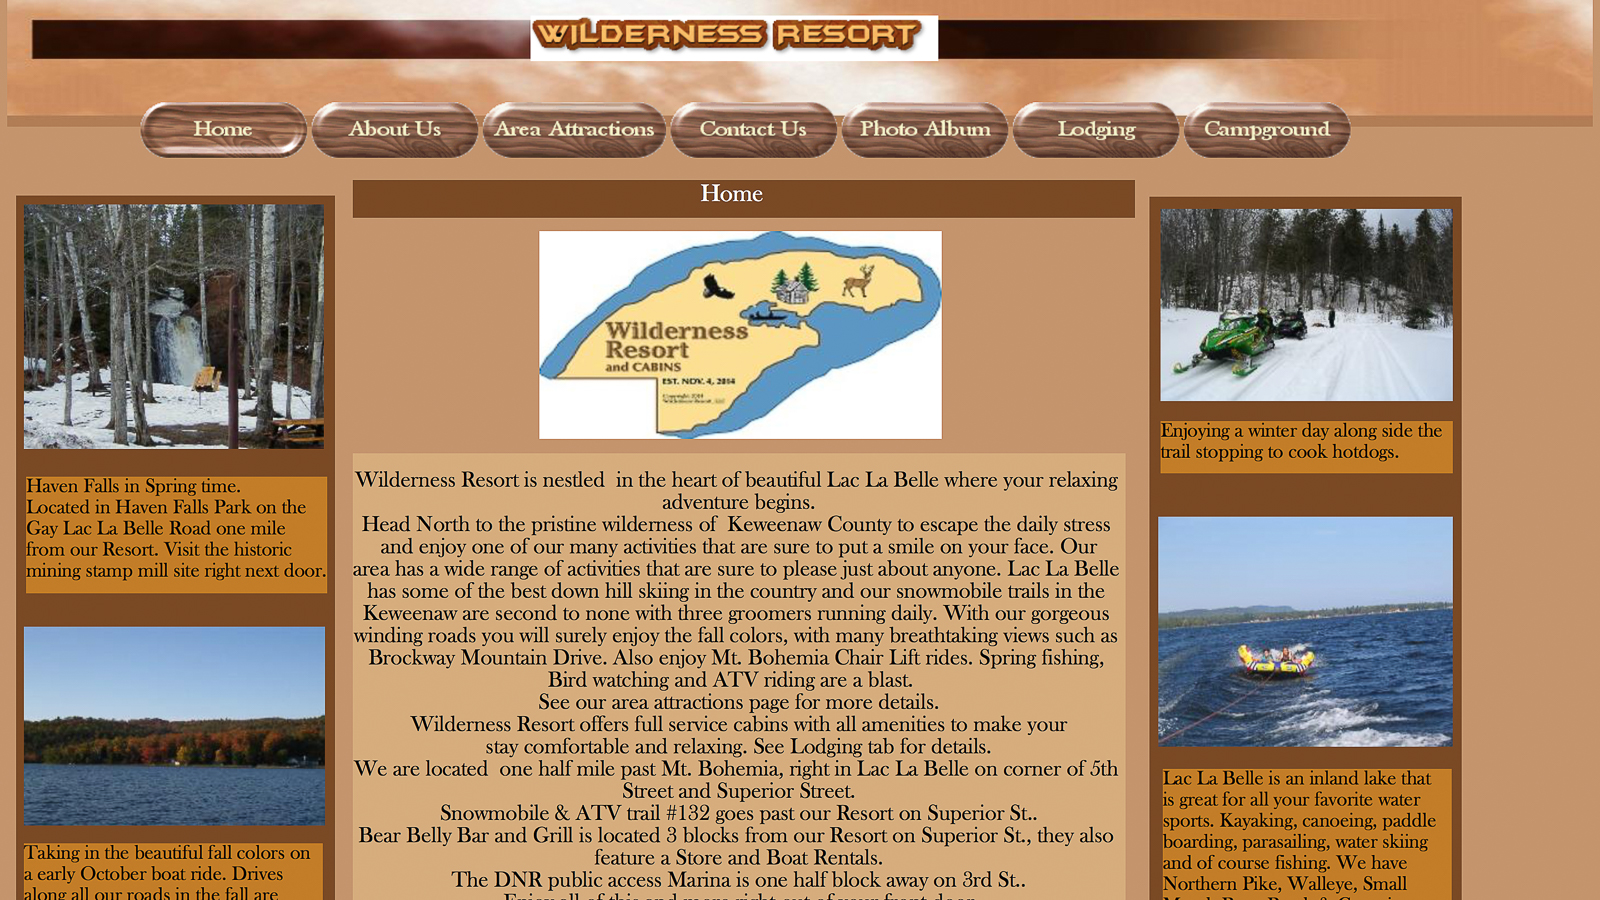 Old Wilderness Resort Website Homepage